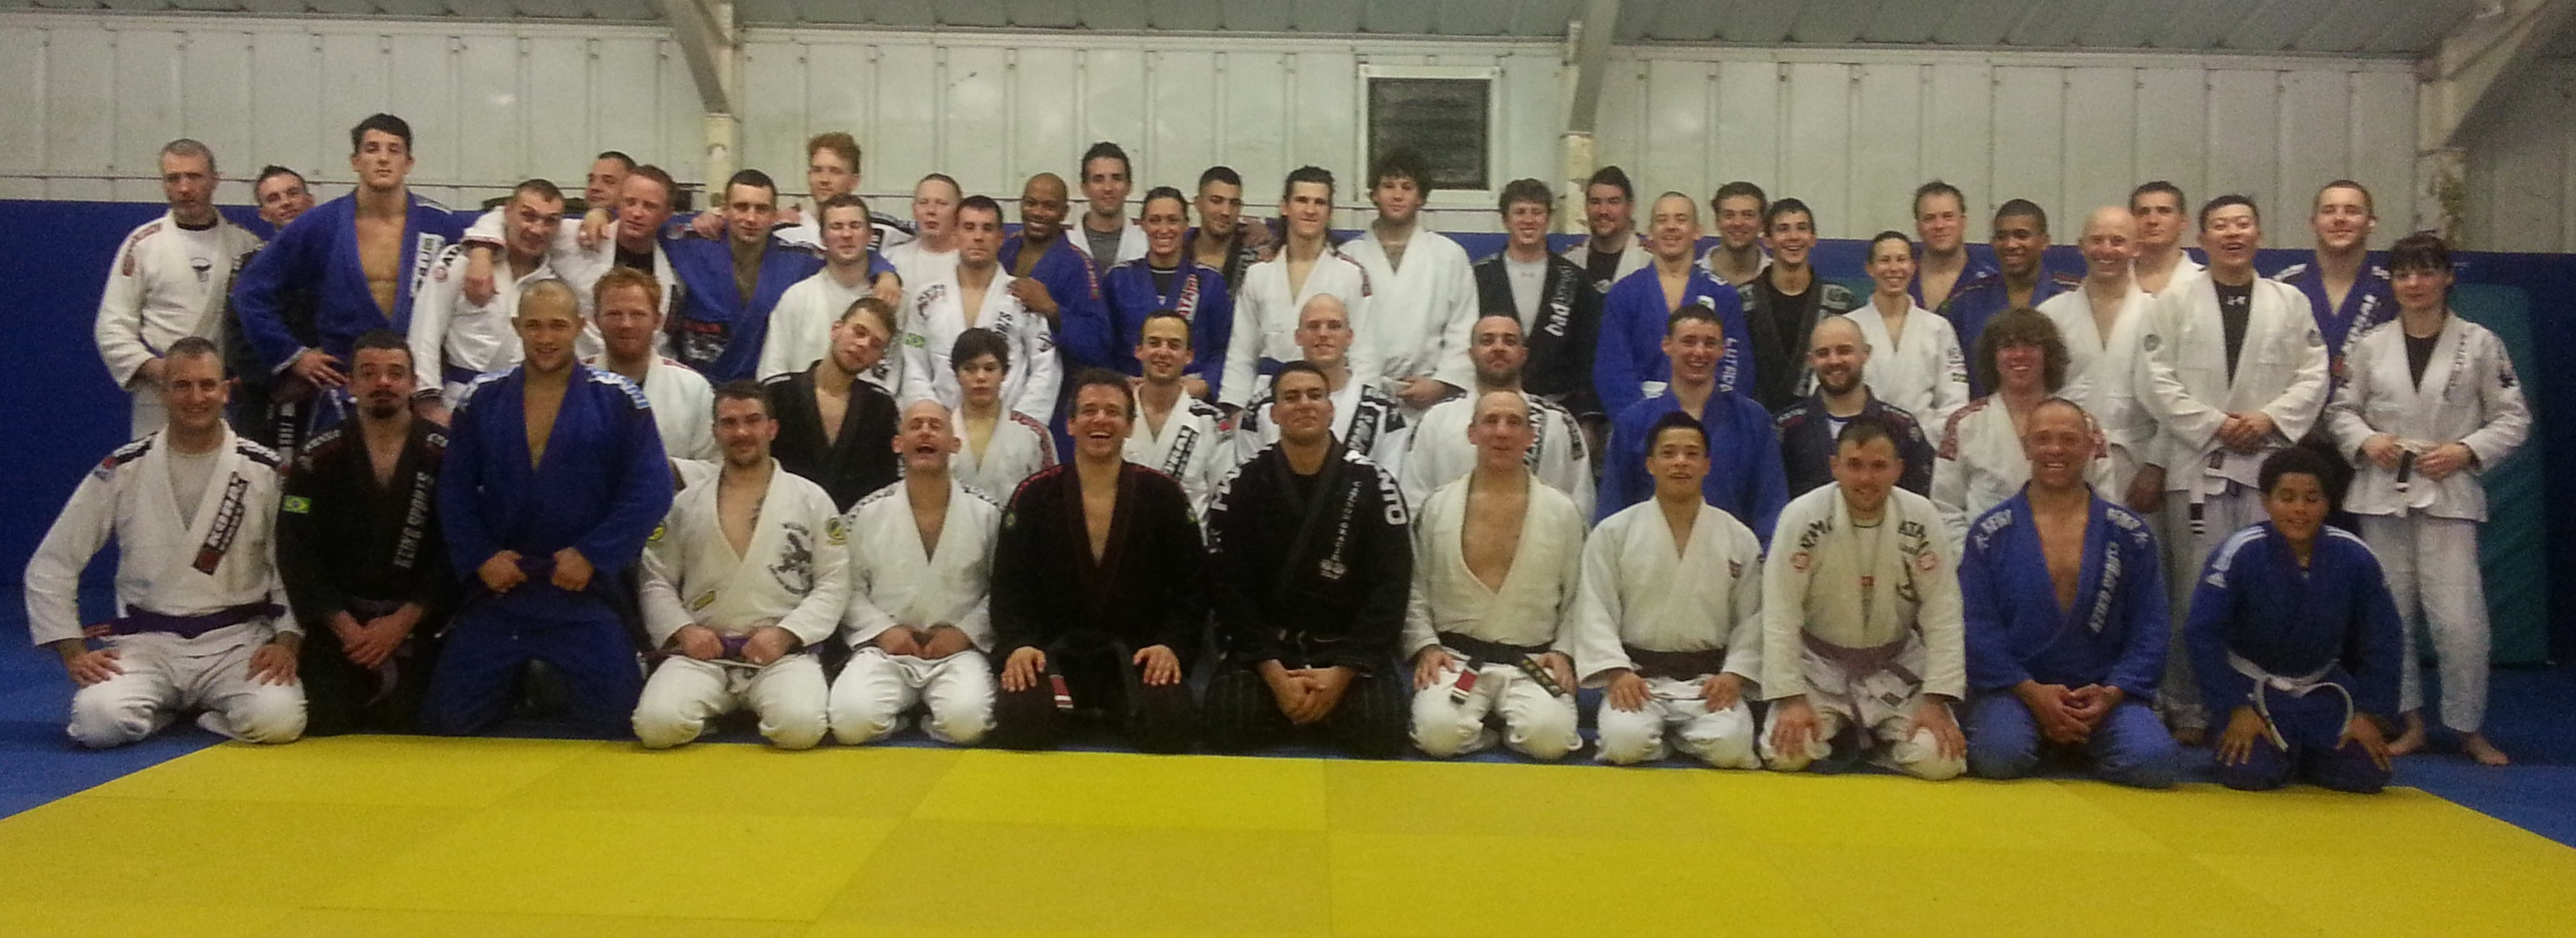 Carslon Gracie Surrey BJJ Team